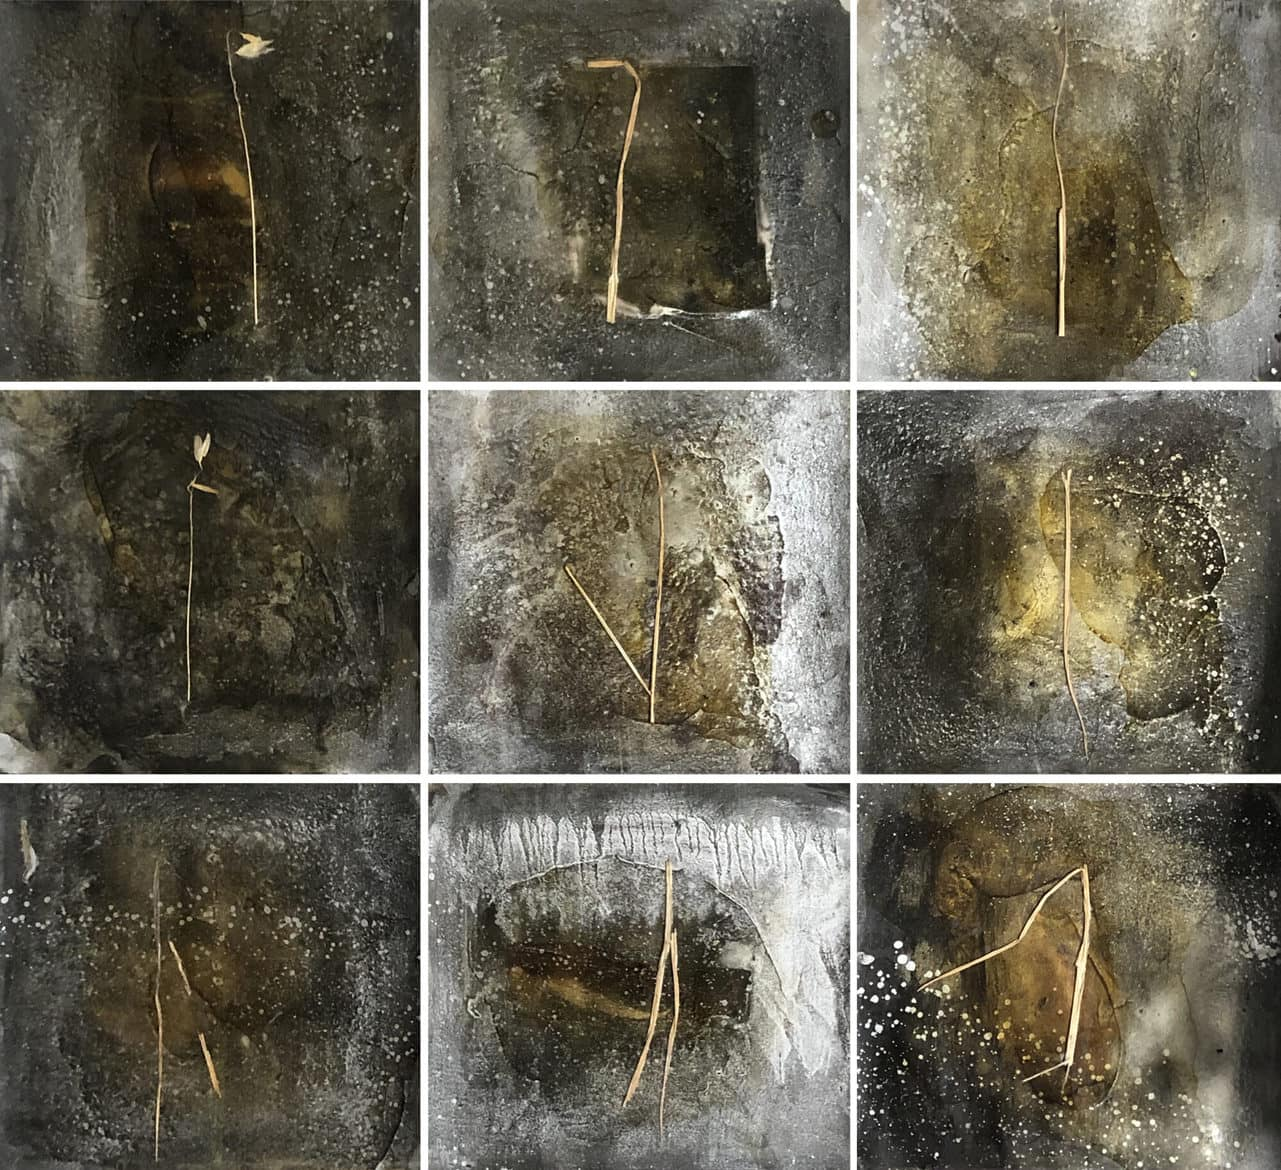 Janet Laurence, 'Blindspot', 1991, charcoal, shellac, silver pigment and native grass on archival paper, 24 x 27 cm each, nine pieces, 72 x 81 cm overall